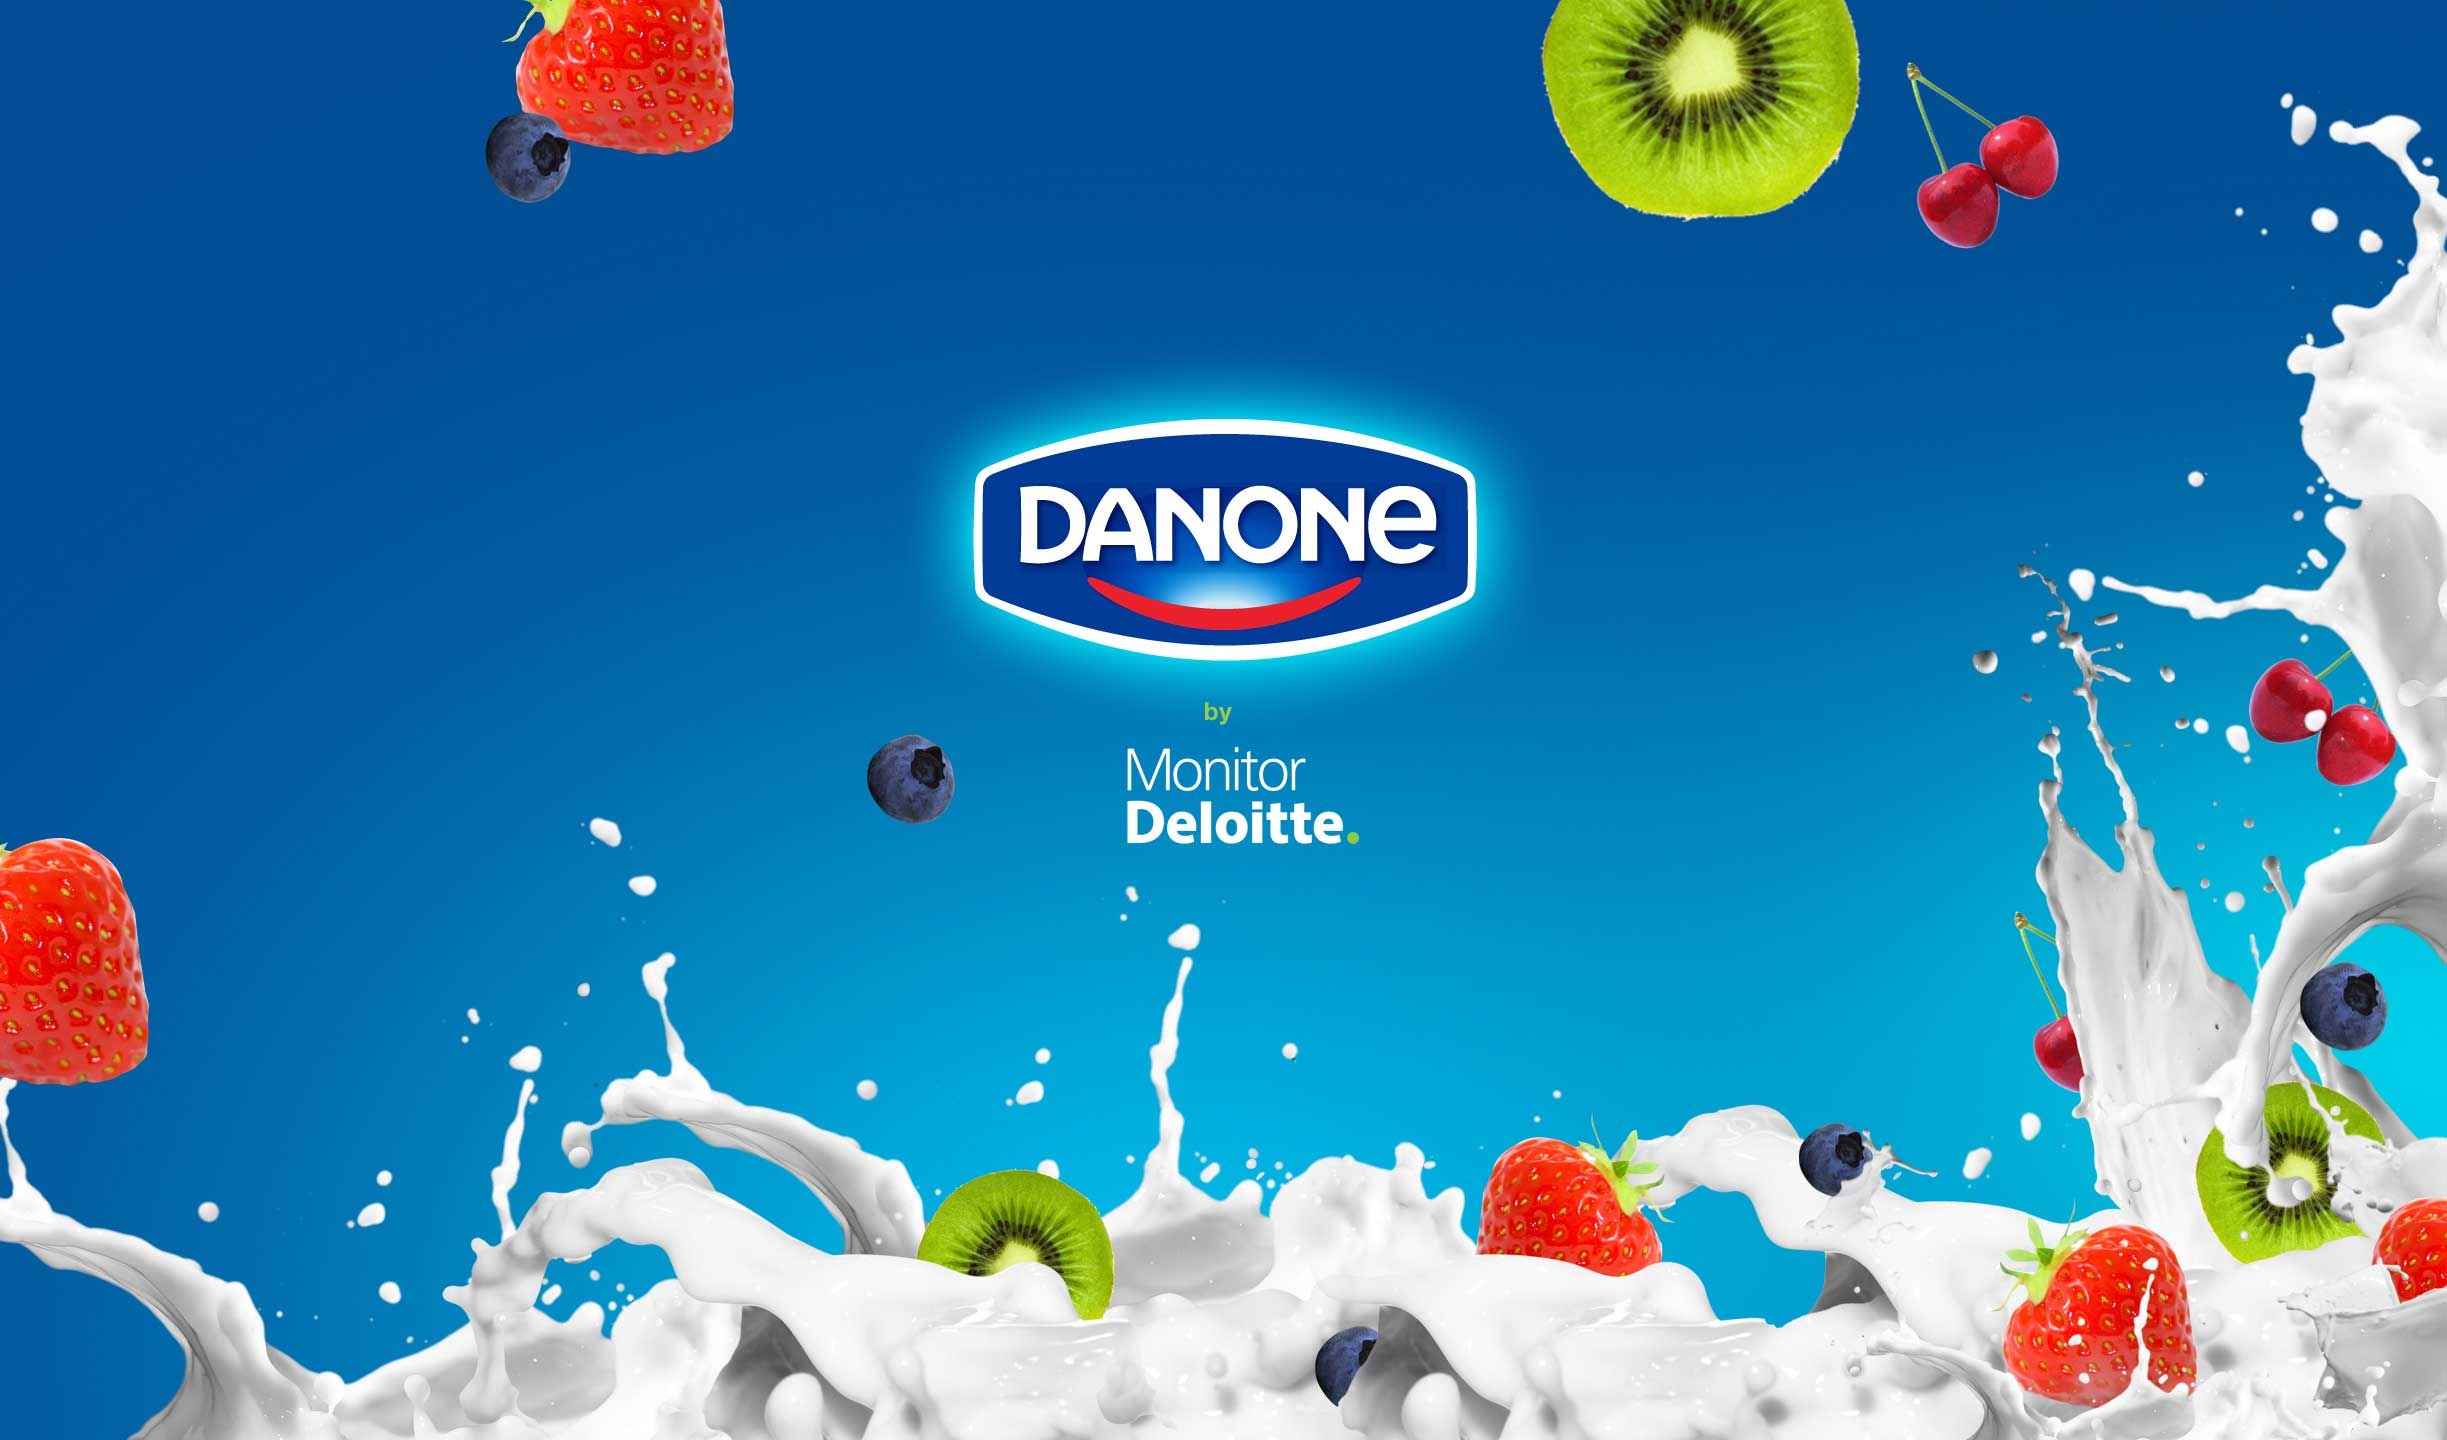 Danone Wallpapers | Full HD Pictures